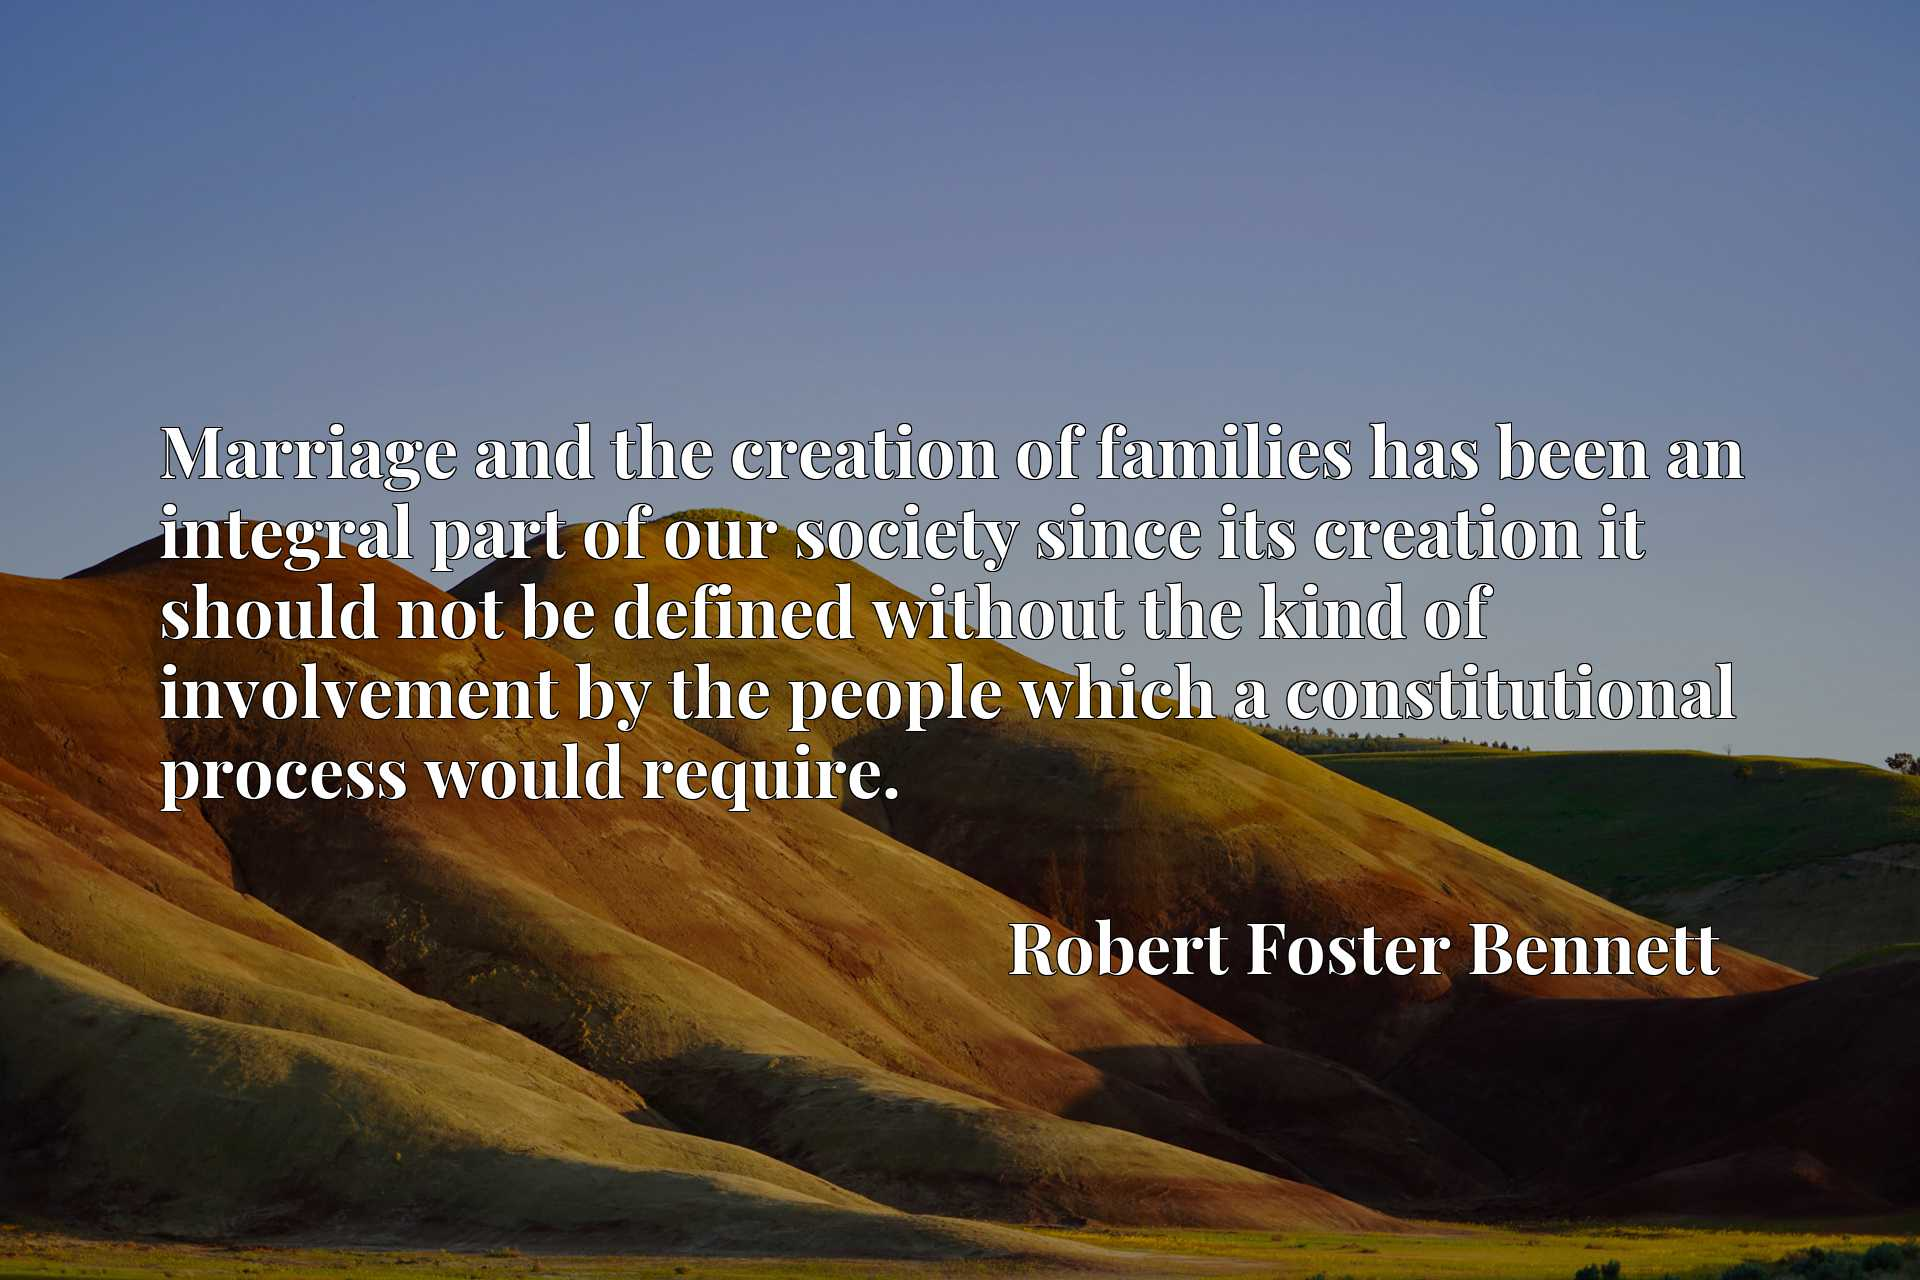 Marriage and the creation of families has been an integral part of our society since its creation it should not be defined without the kind of involvement by the people which a constitutional process would require.